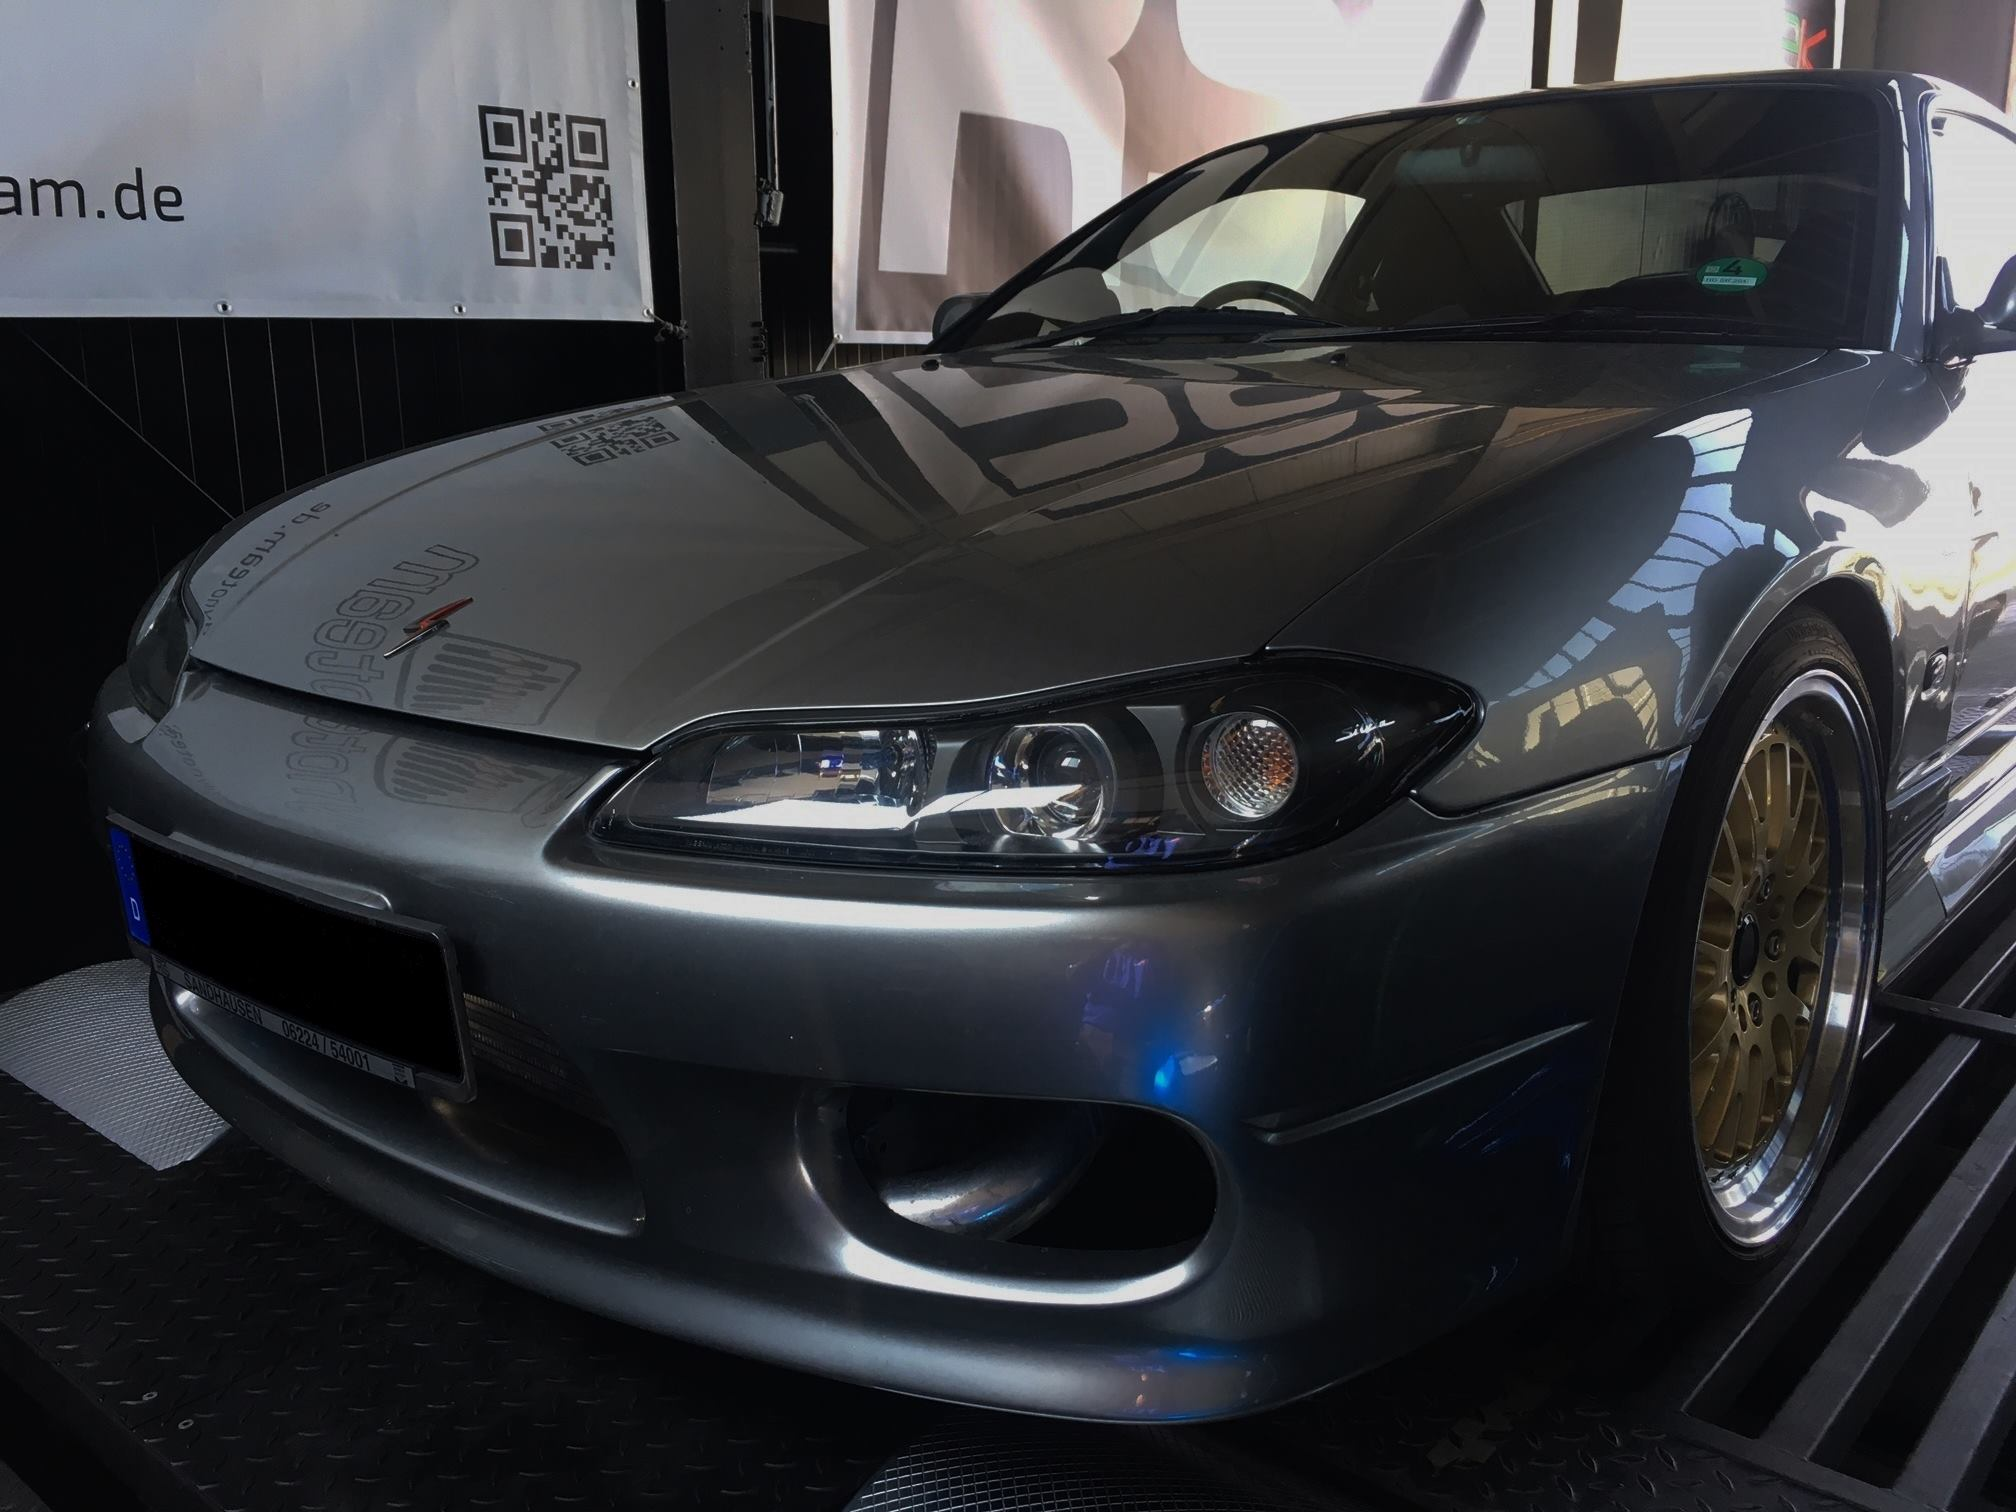 Nissan Silvia S15 Spec R RSC mapping